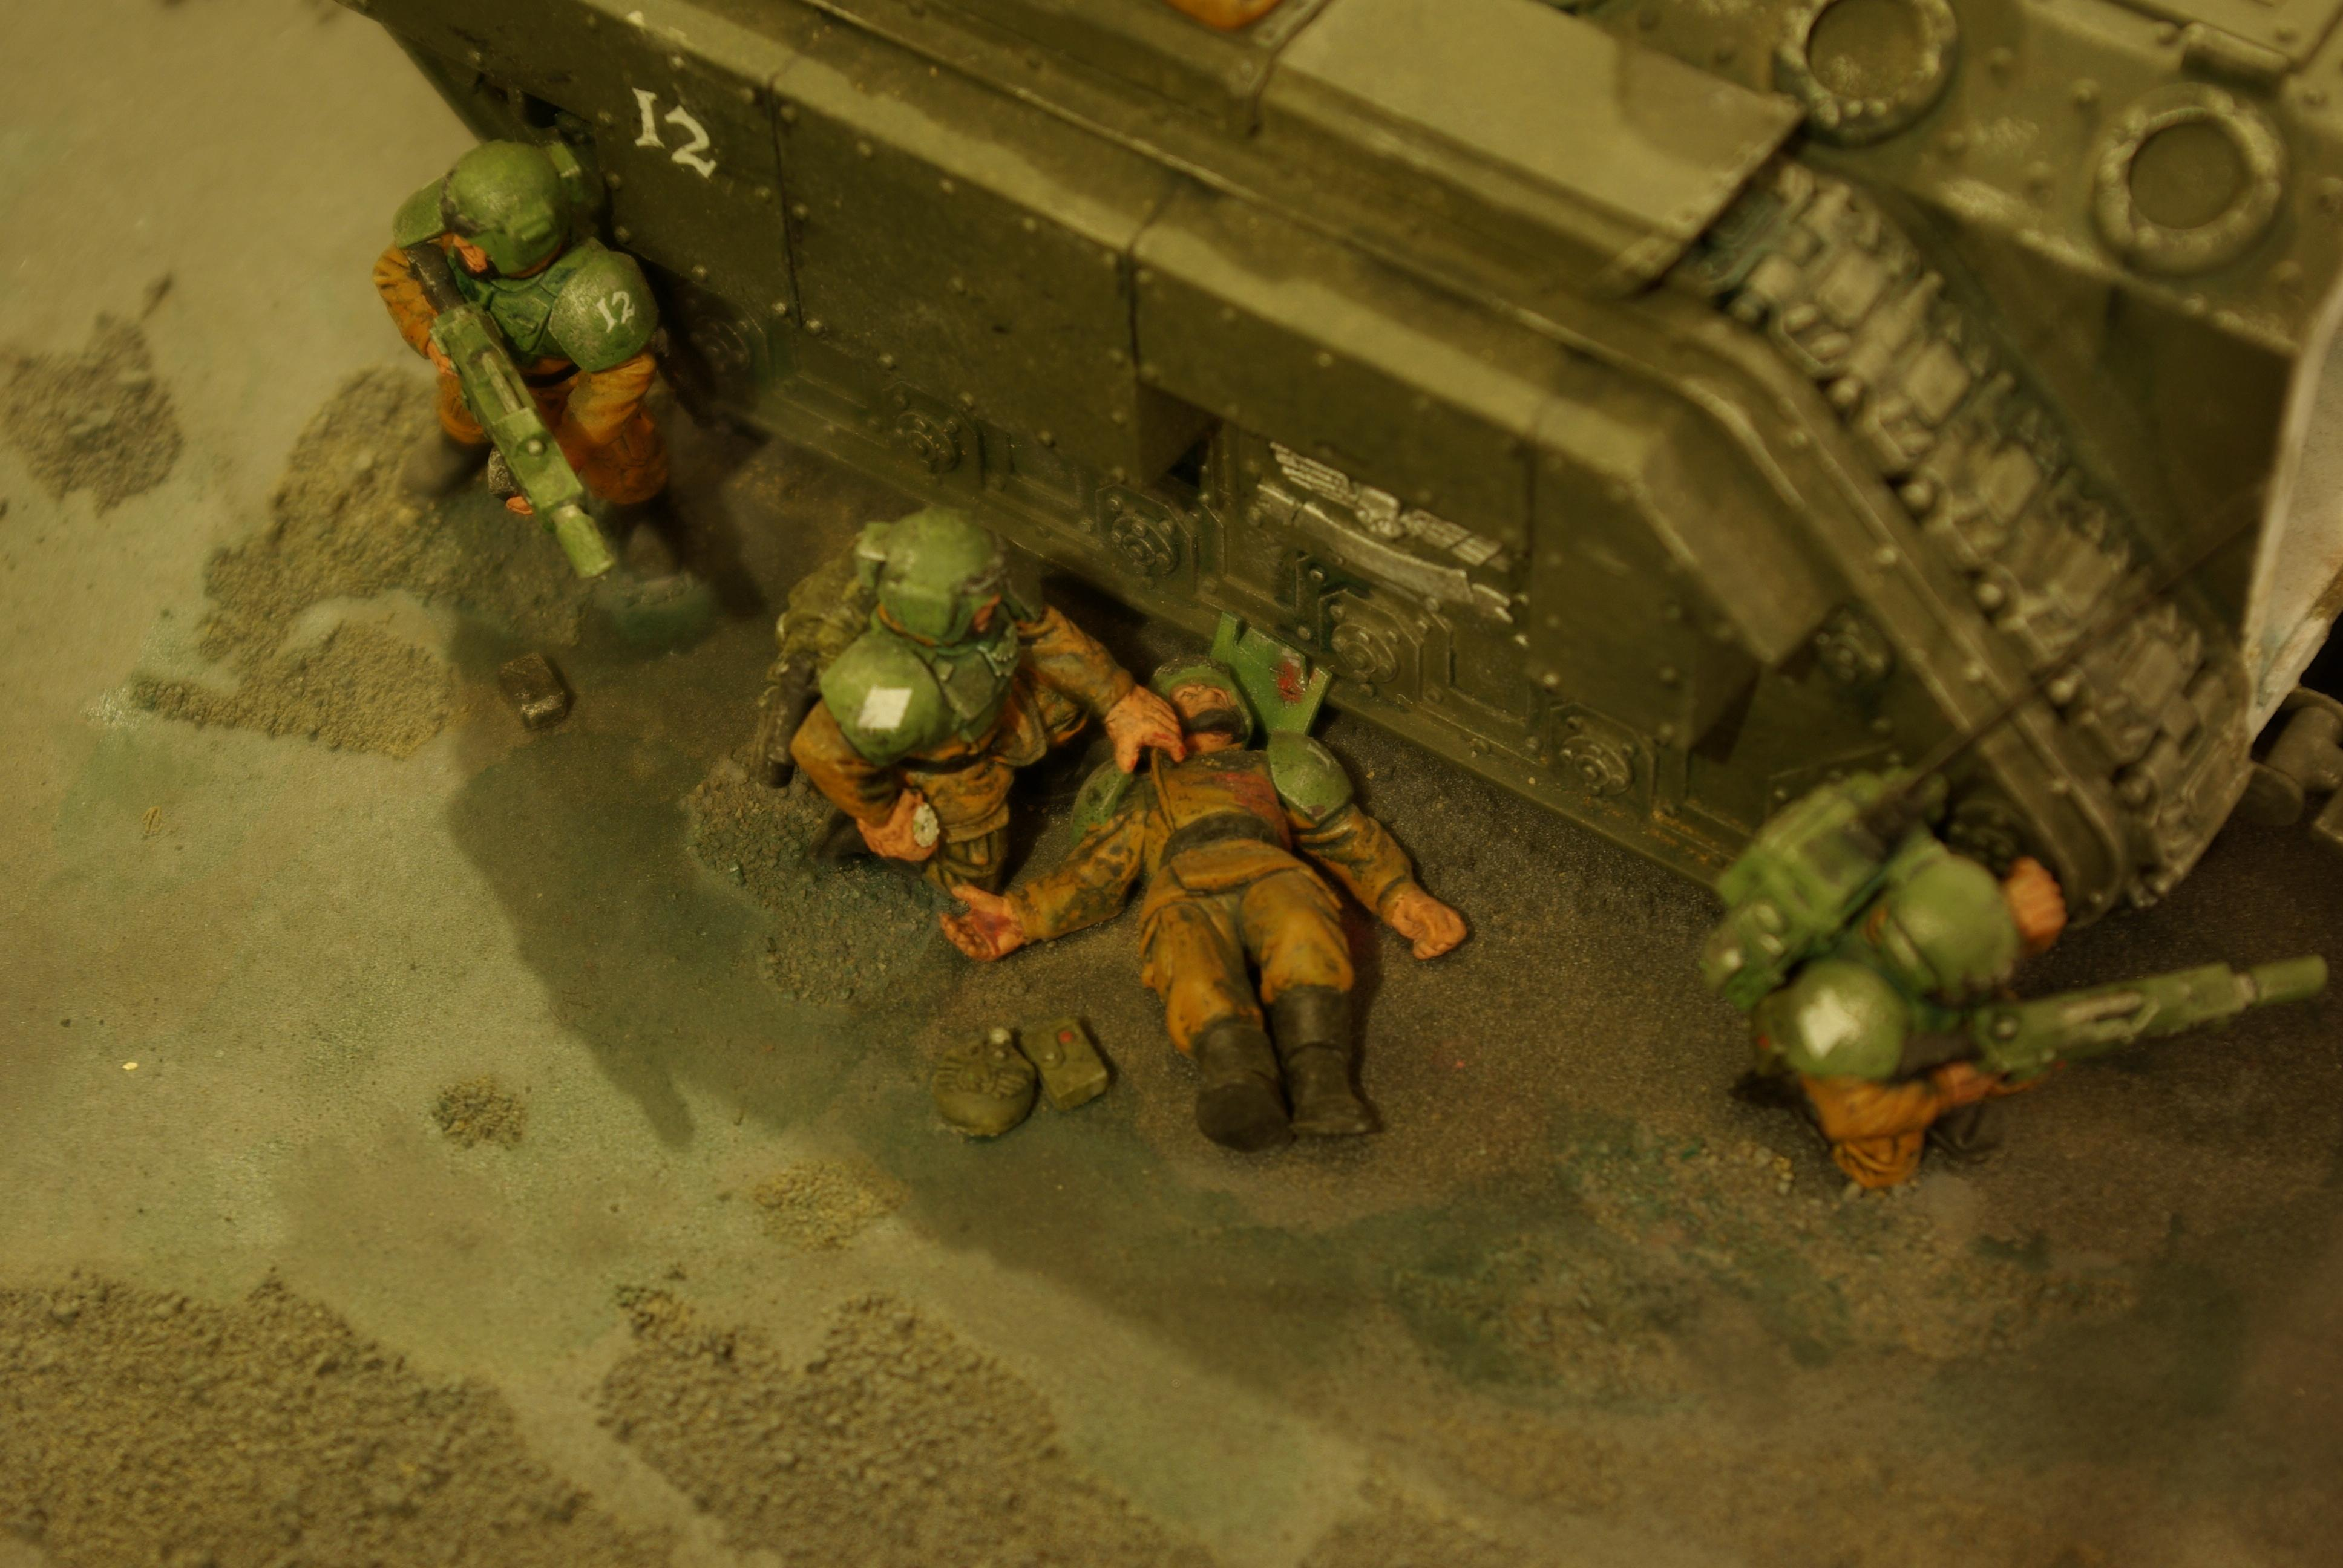 Action, Awesome, Chimera, Imperial Guard, Medic, Warhammer 40,000